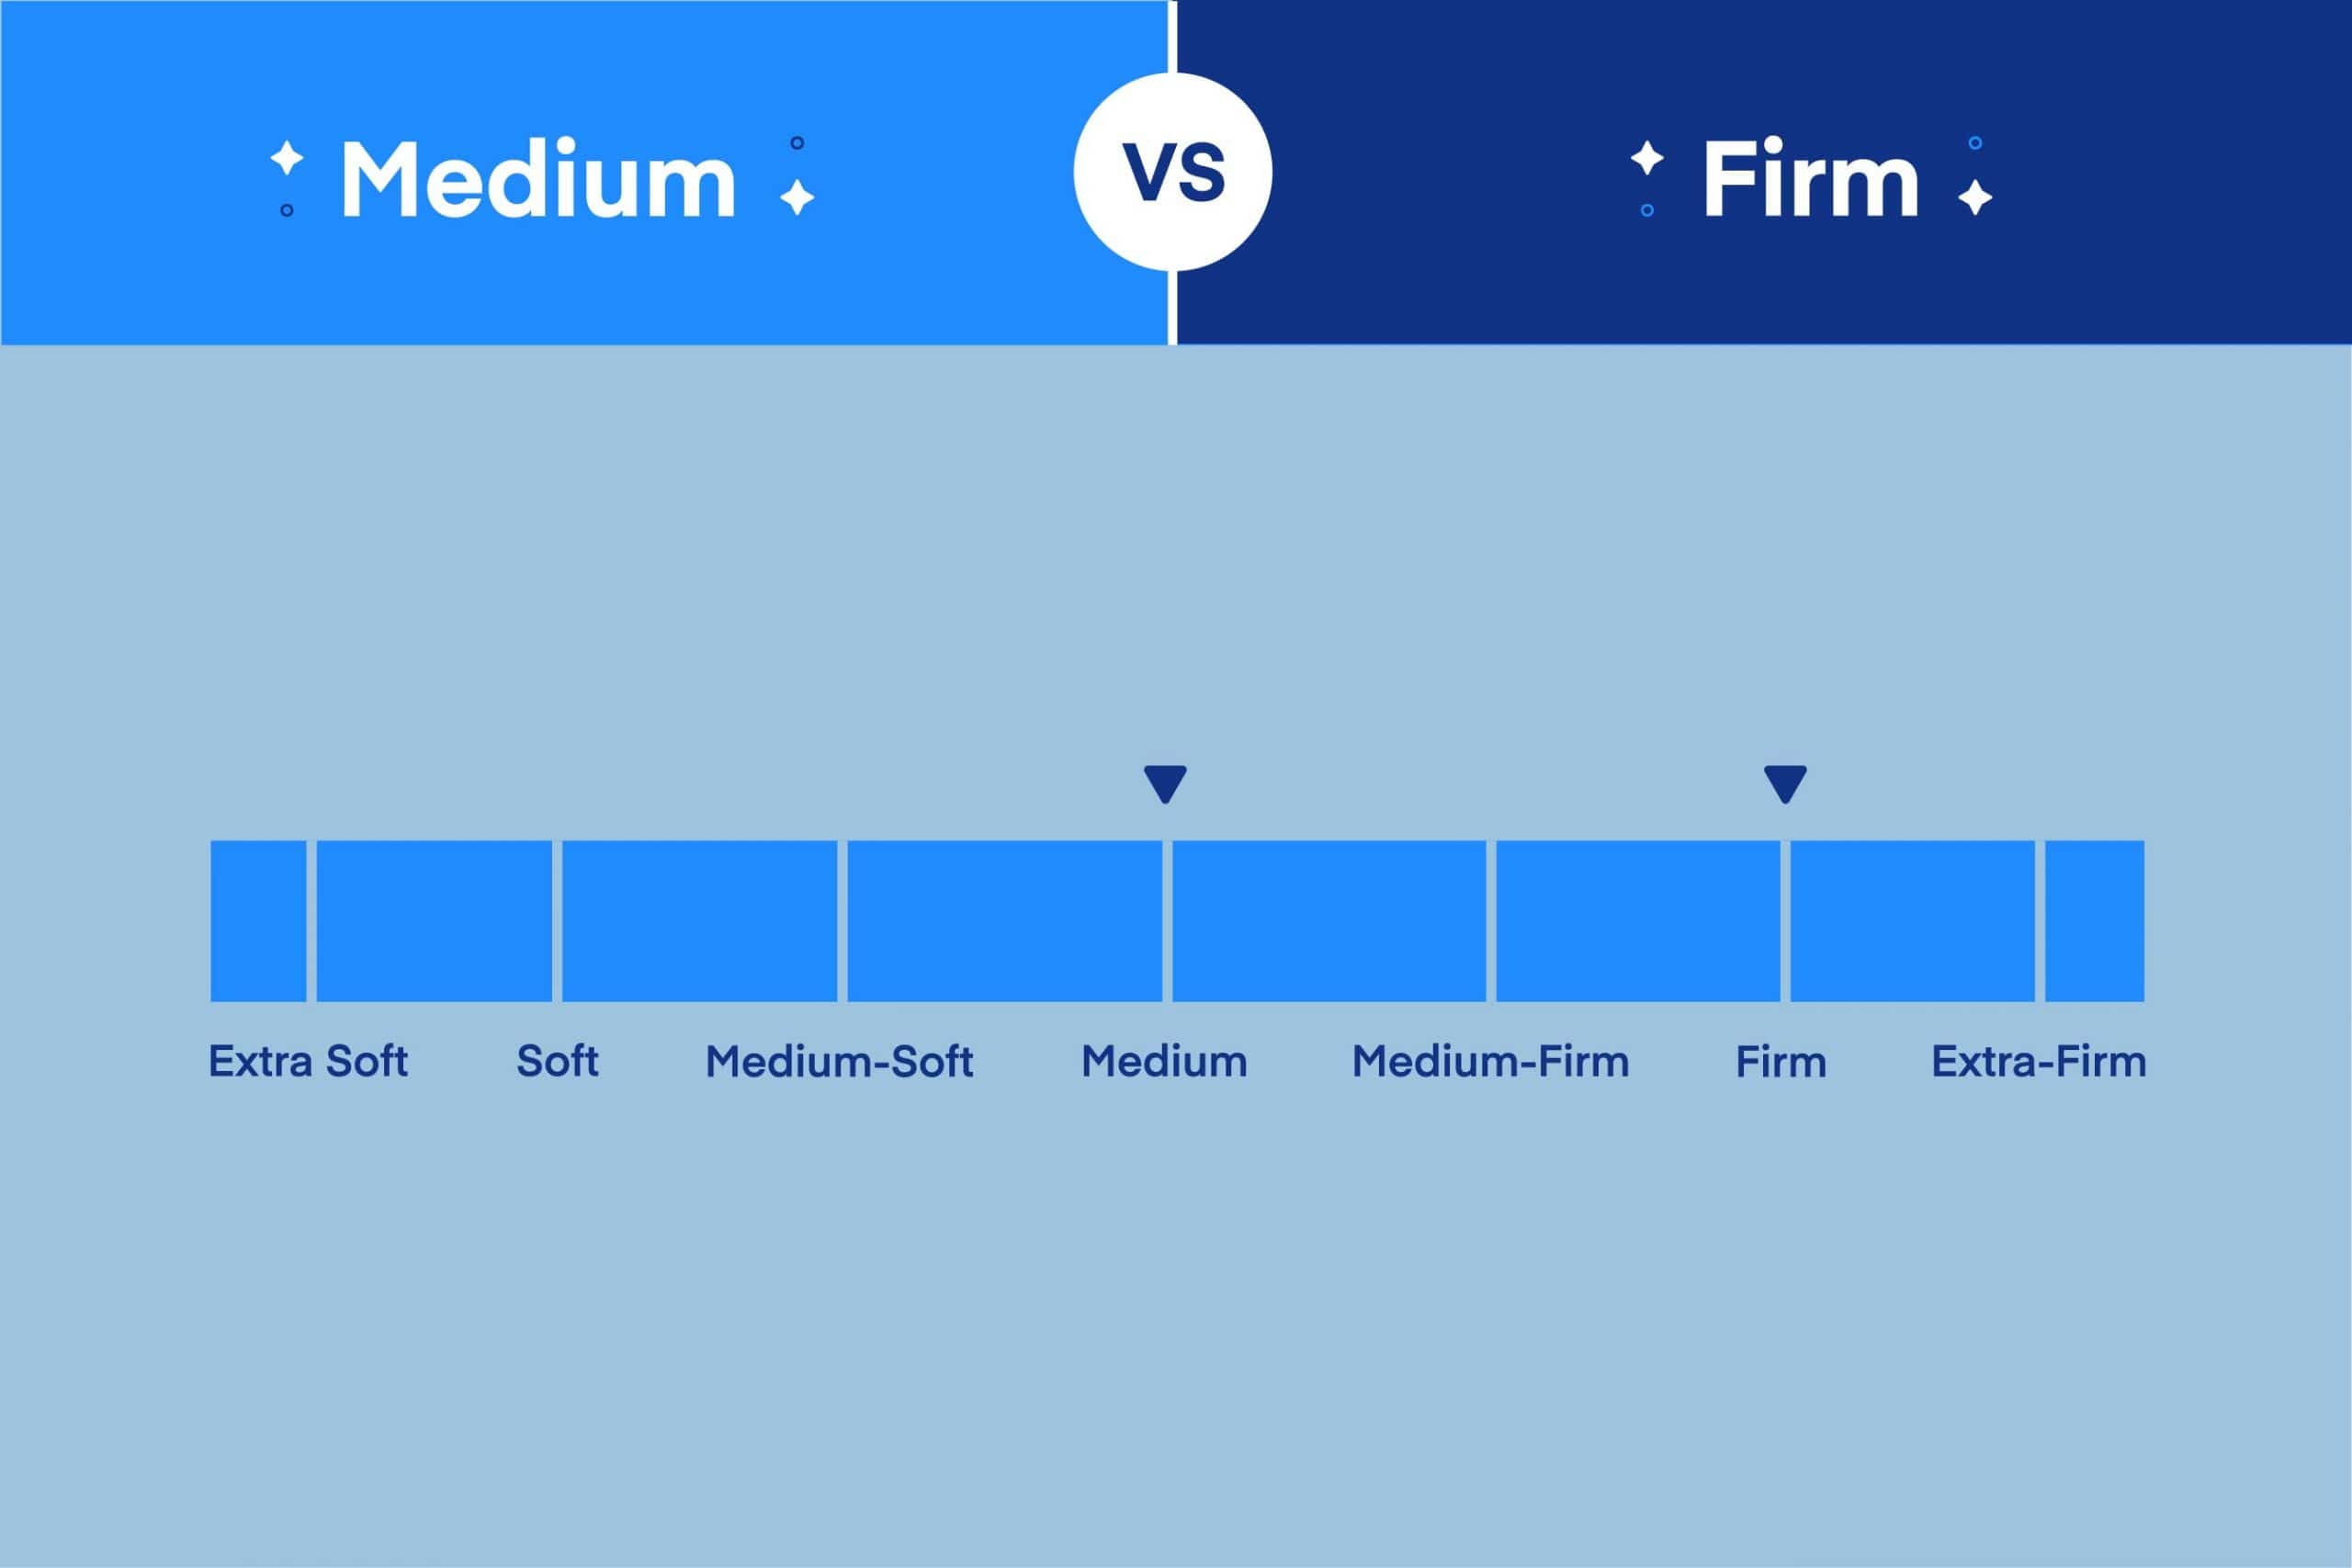 Firm vs. Medium Mattress